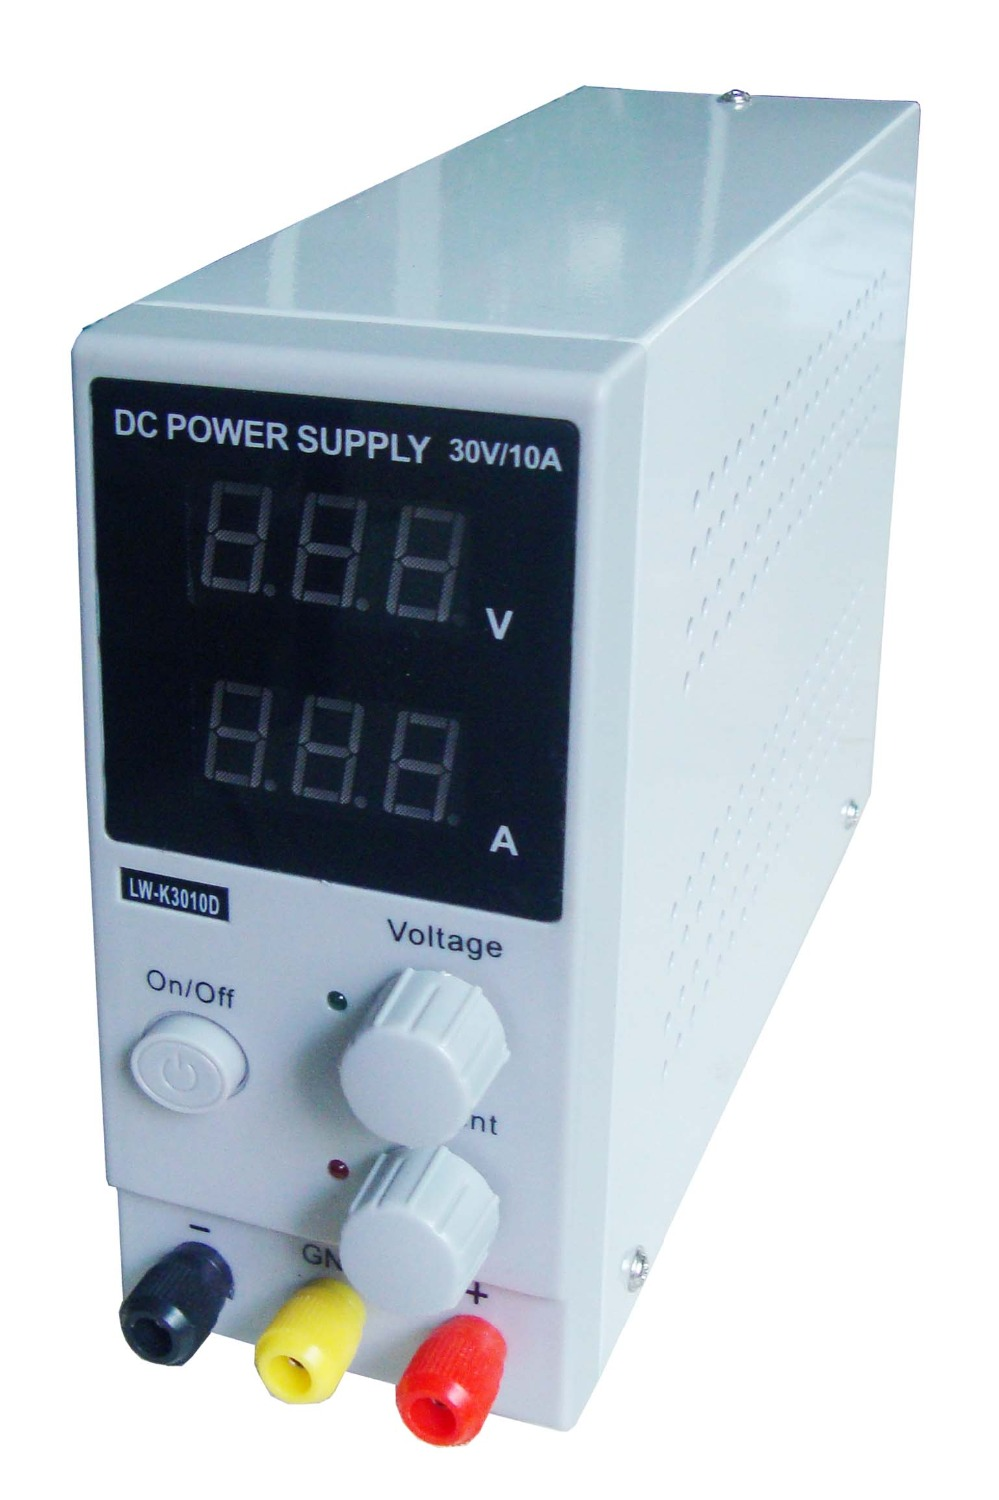 LW DC power supply 30V 10A Mini Adjustable Digital DC power supplise Switching Power supply 3 digits for US EU AU Plug 110-240V original lw mini adjustable digital dc power supply 0 30v 0 10a 110v 220v switching power supply 0 01v 0 01a 34 pcs dc jack